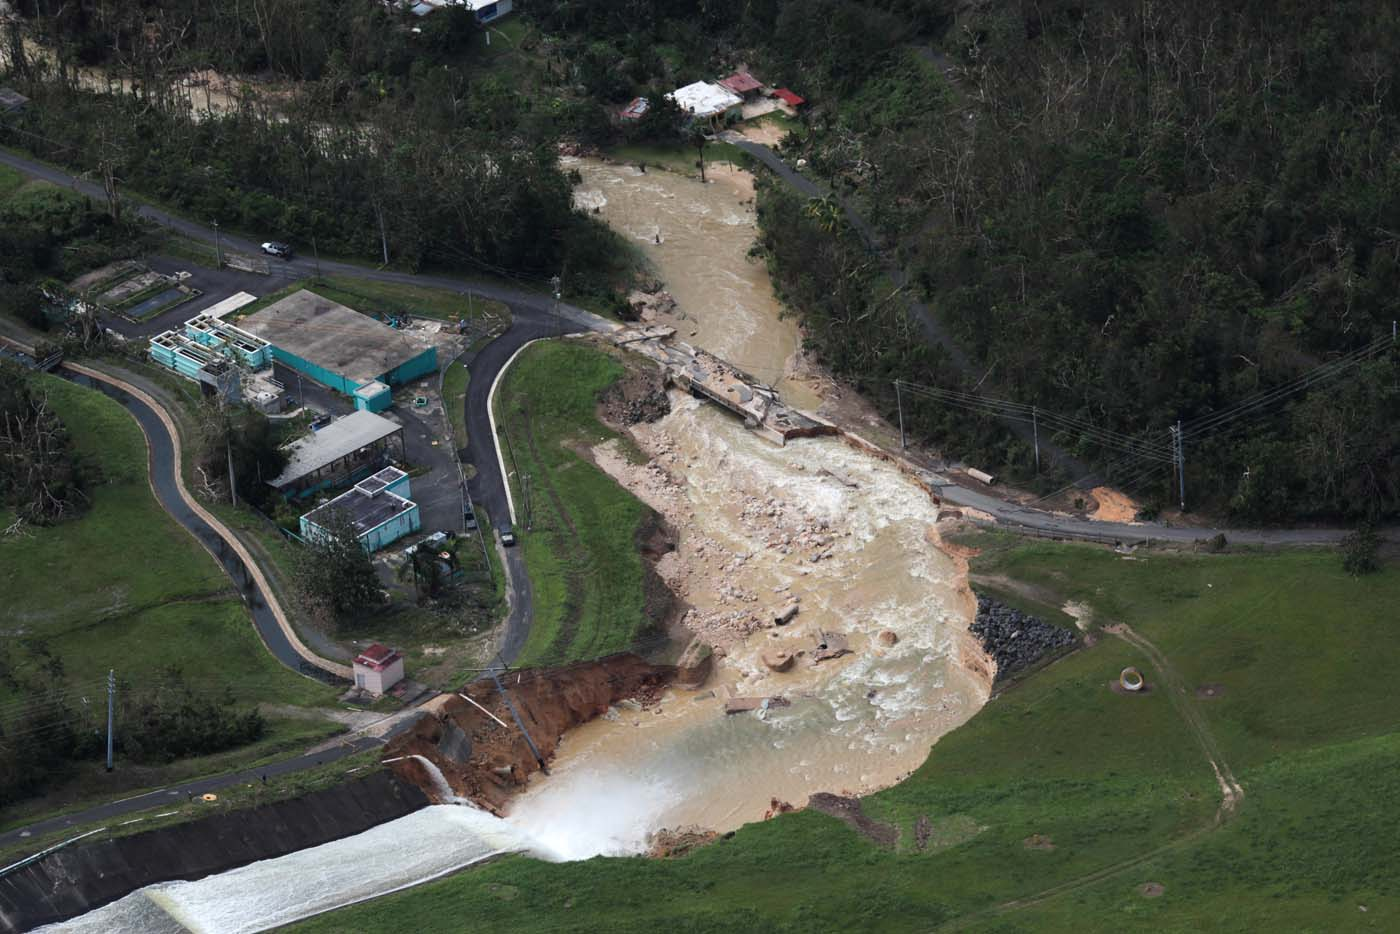 An aerial view shows the damage to the Guajataca dam in the aftermath of Hurricane Maria, in Quebradillas, Puerto Rico September 23, 2017. REUTERS/Alvin Baez